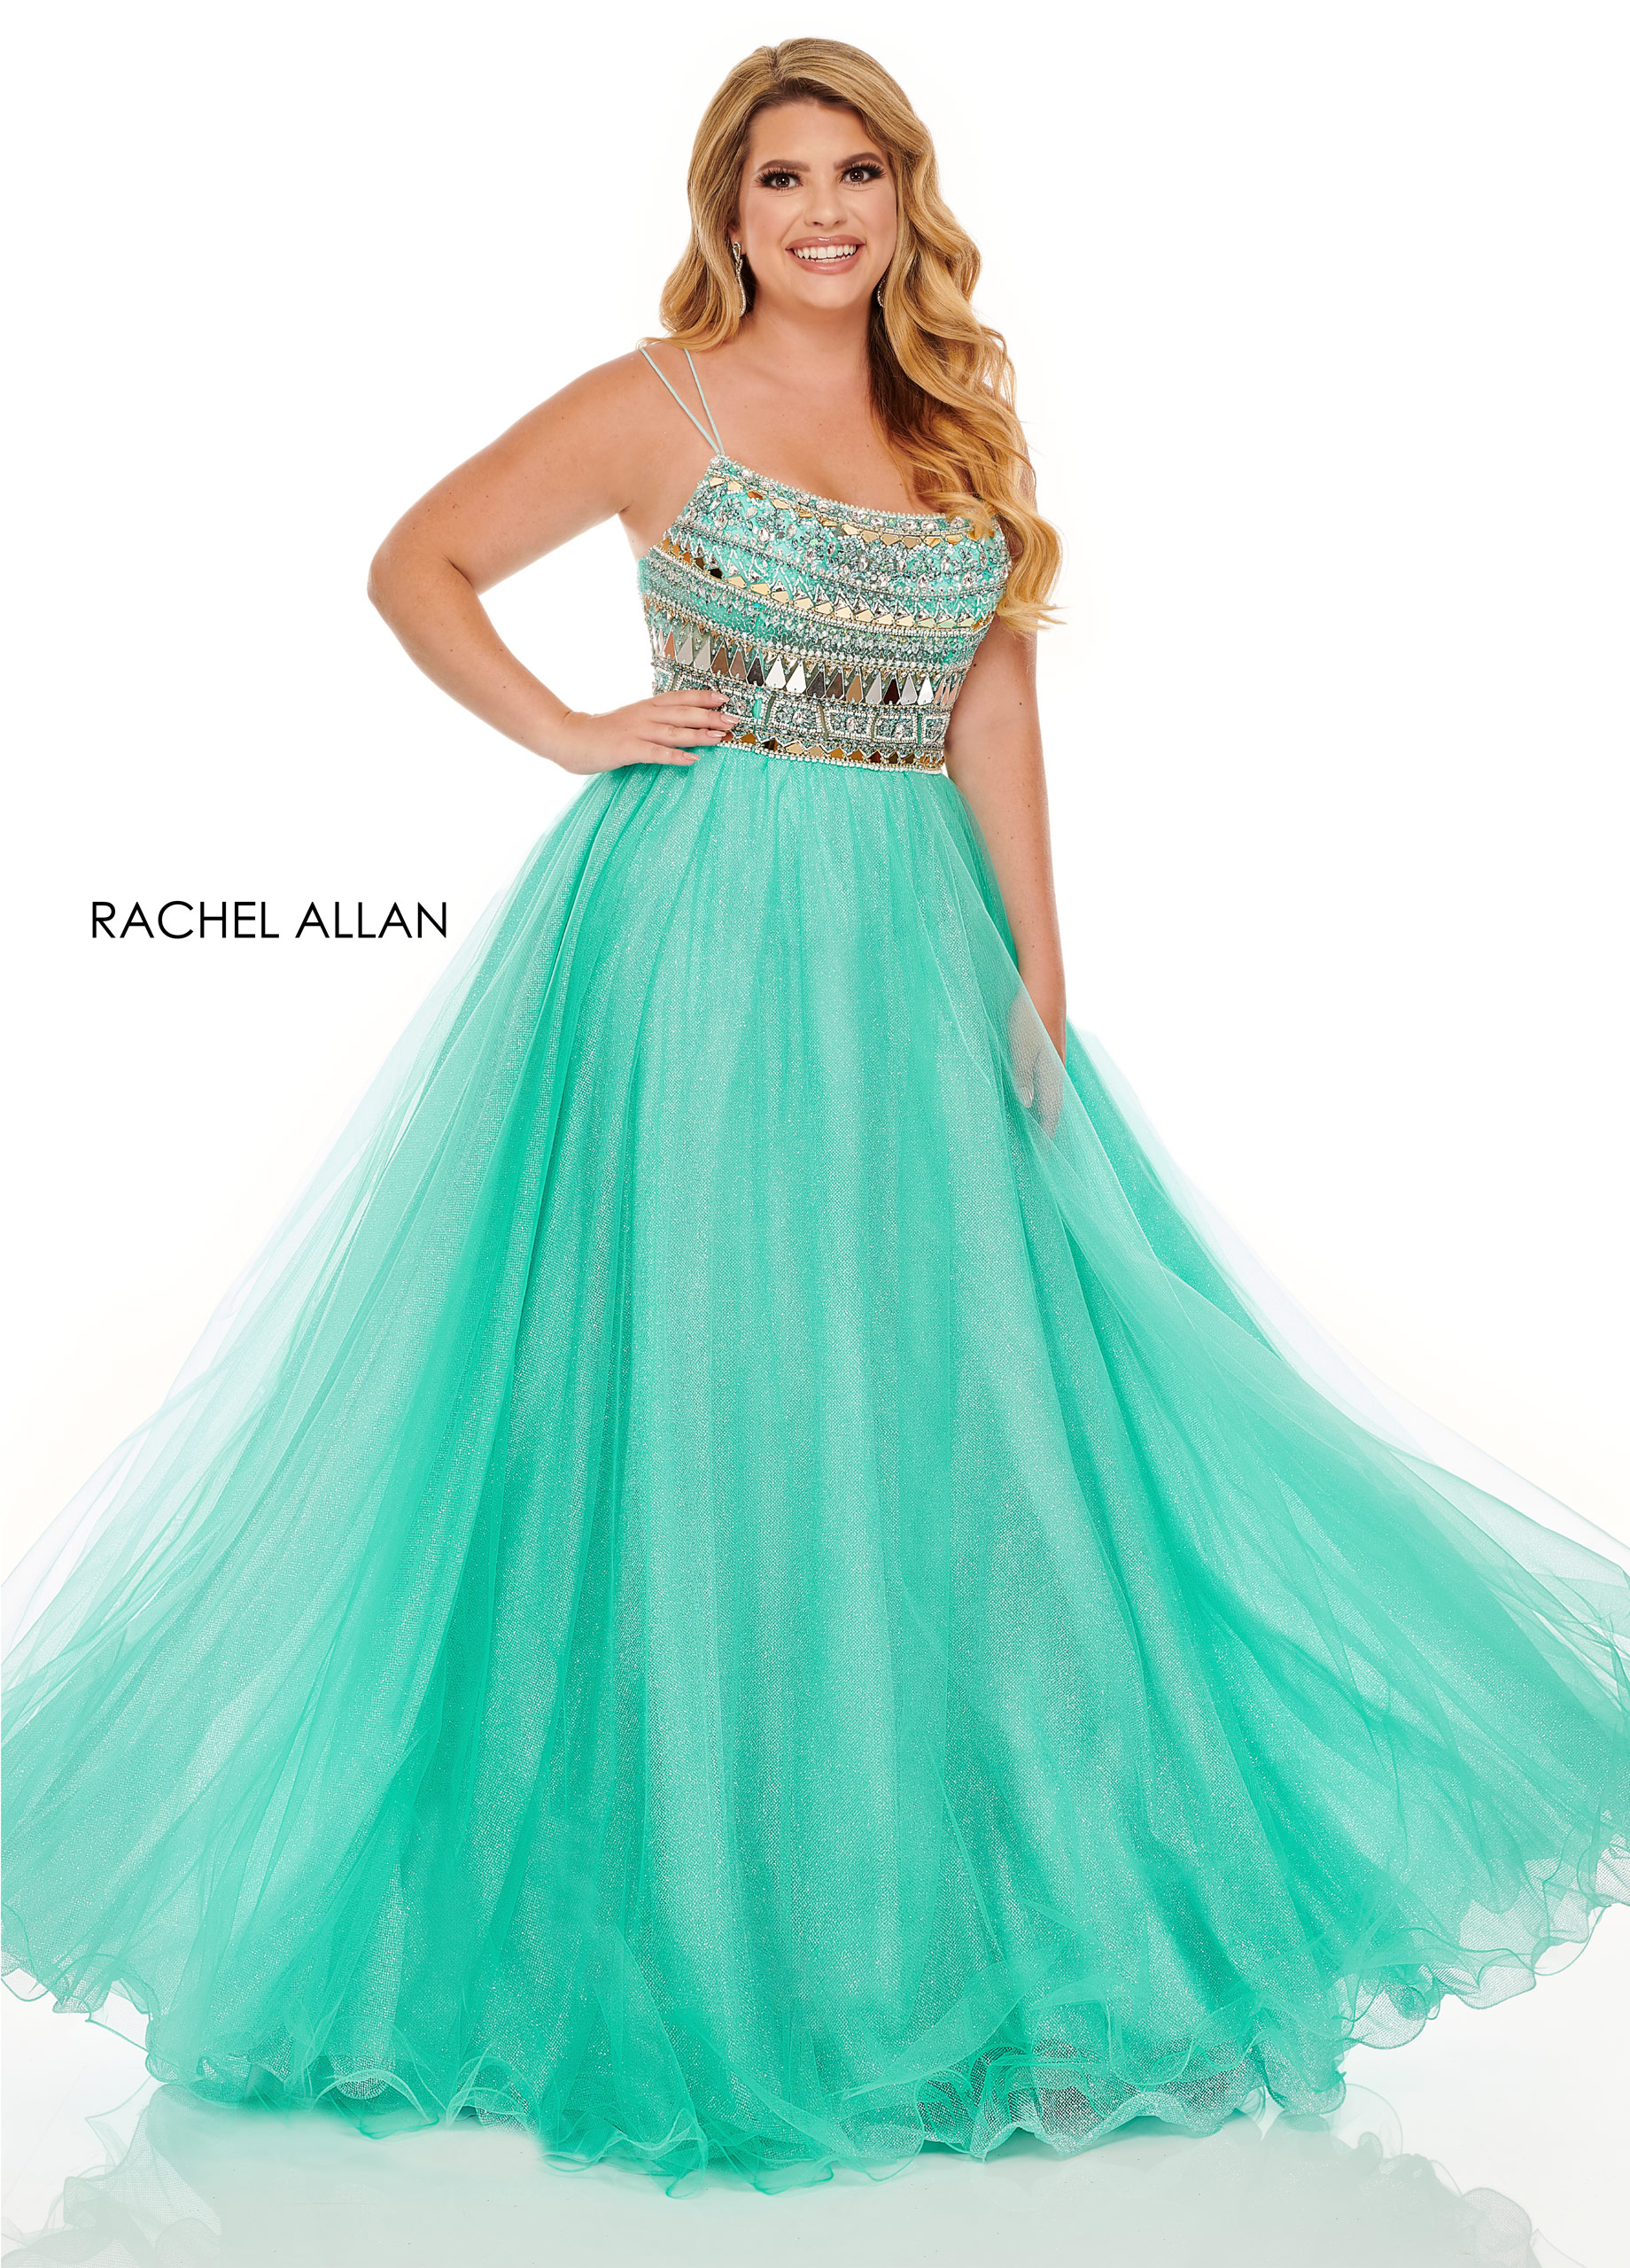 Scoop Neck A-Line Plus Size Dresses in Green Color